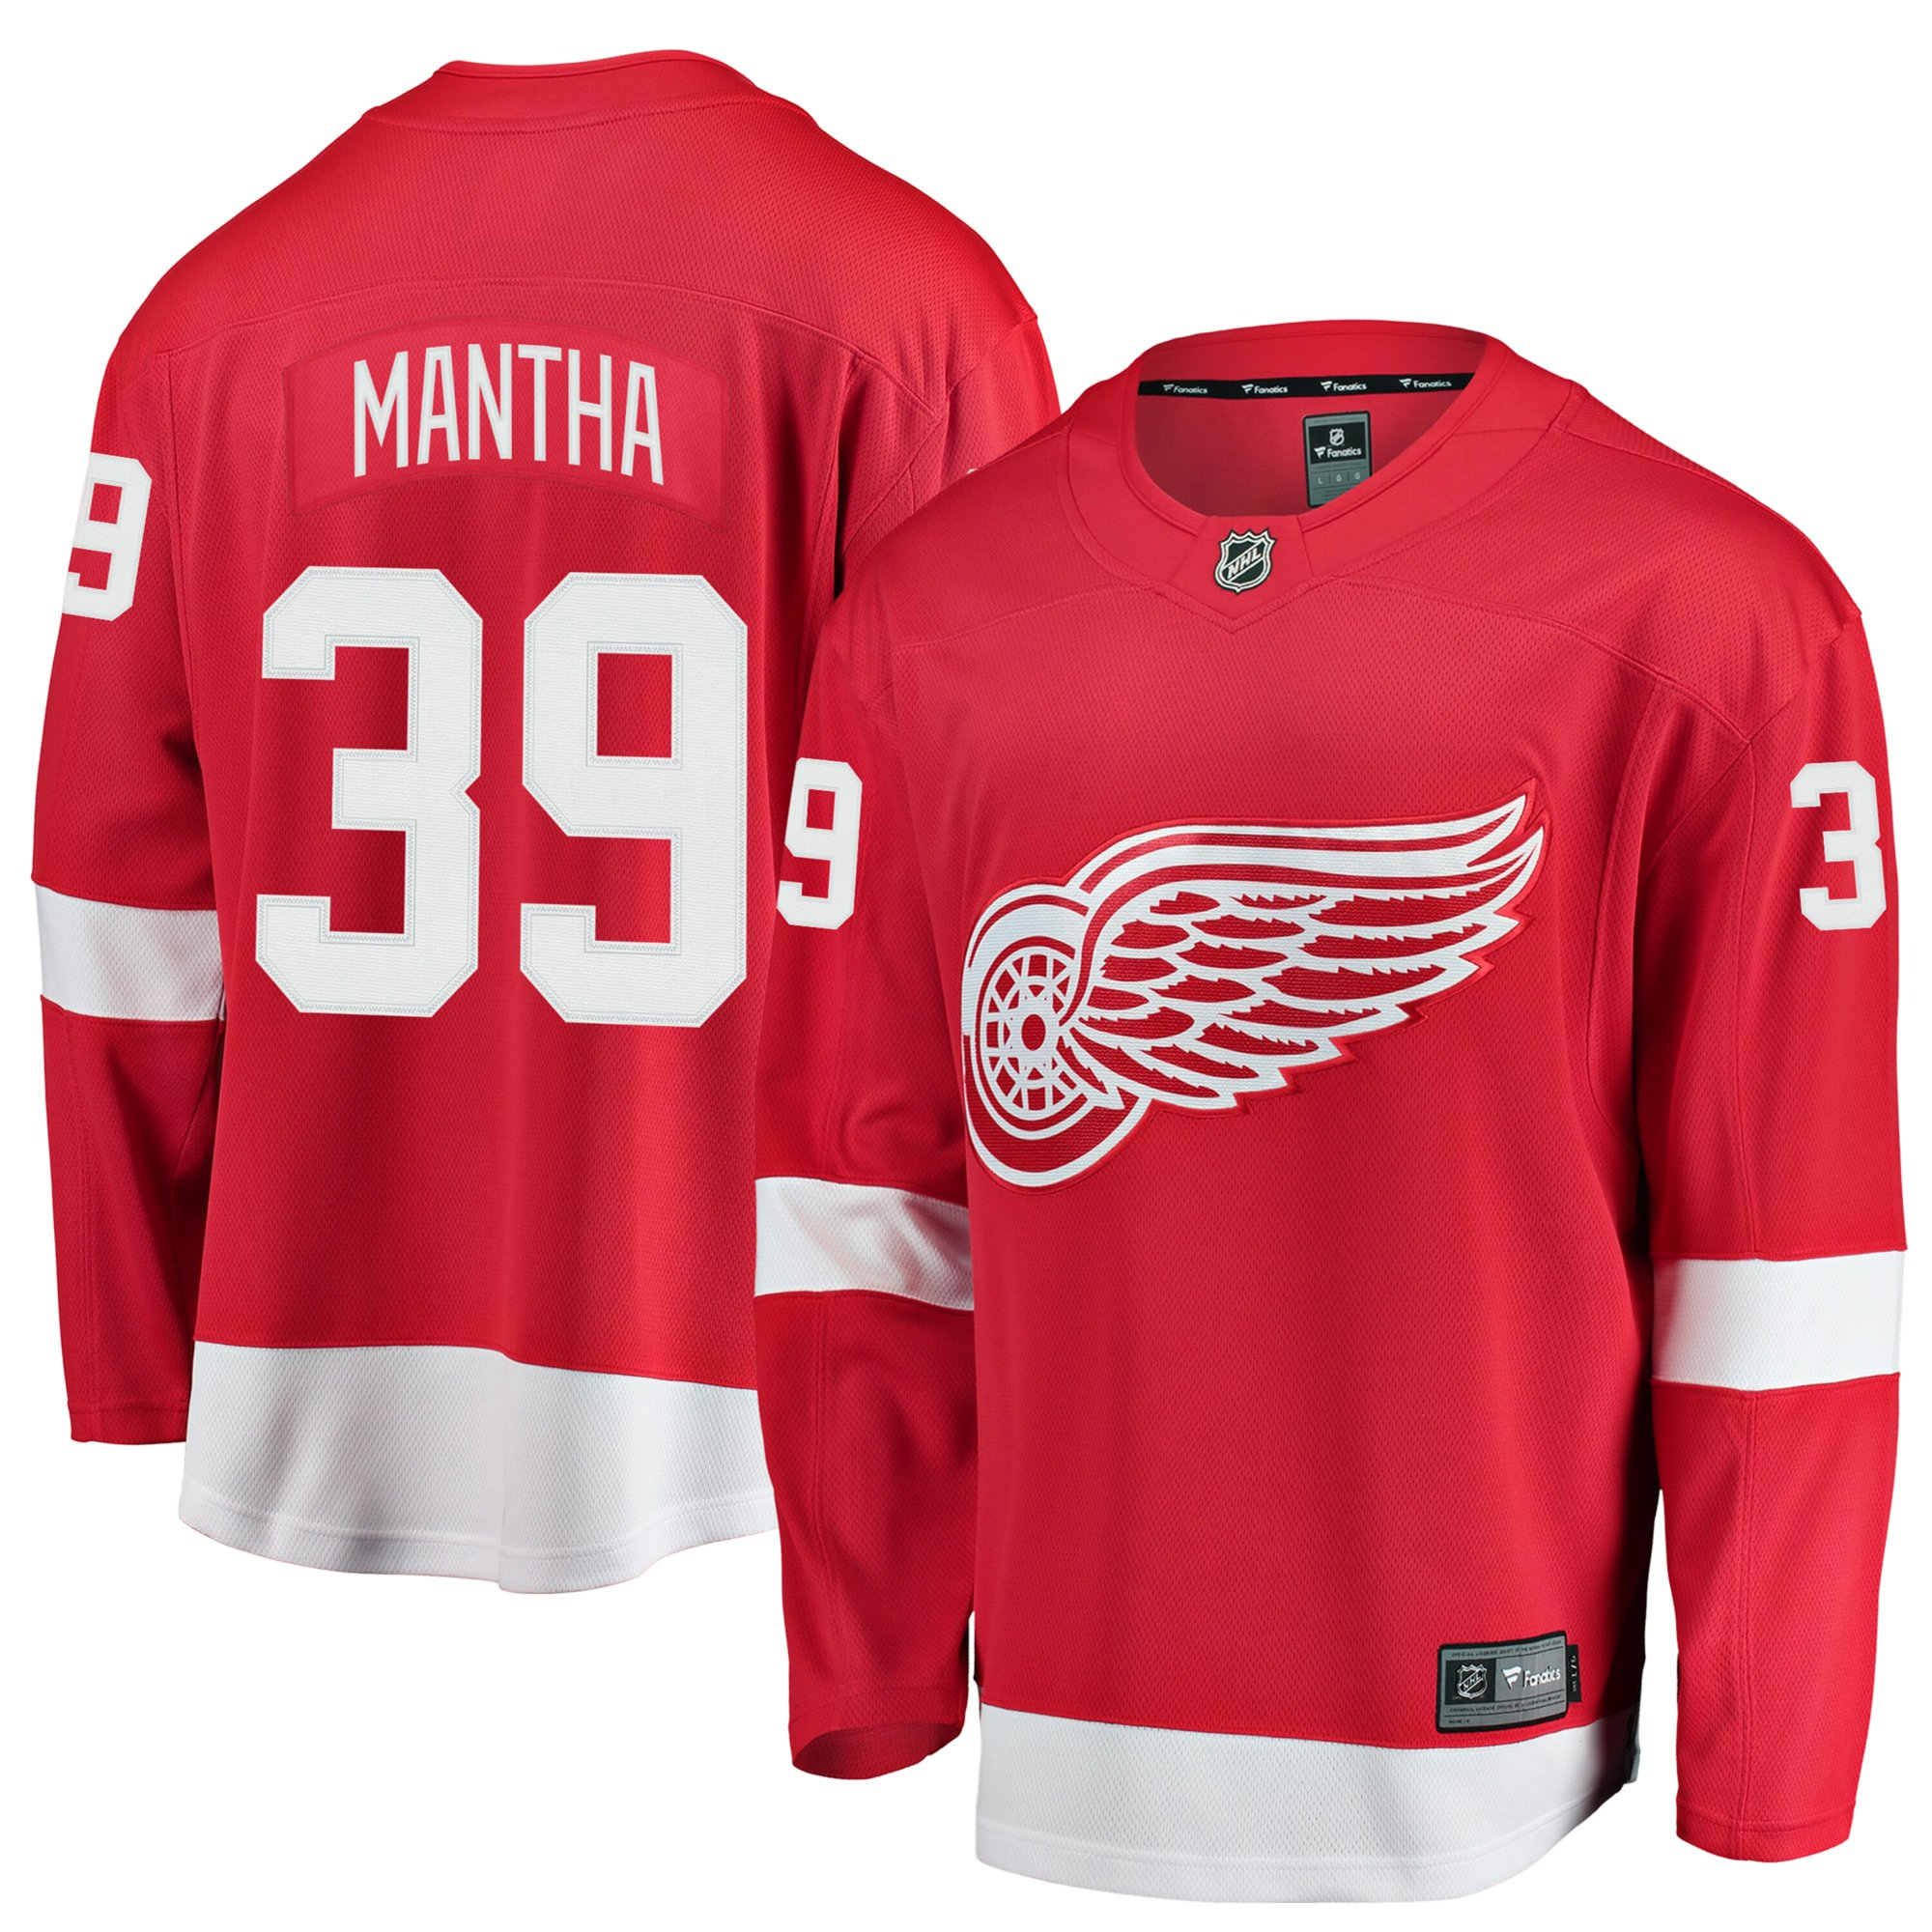 promo code e62ec 61eb0 Anthony Mantha Detroit Red Wings NHL Fanatics Breakaway Home Jersey